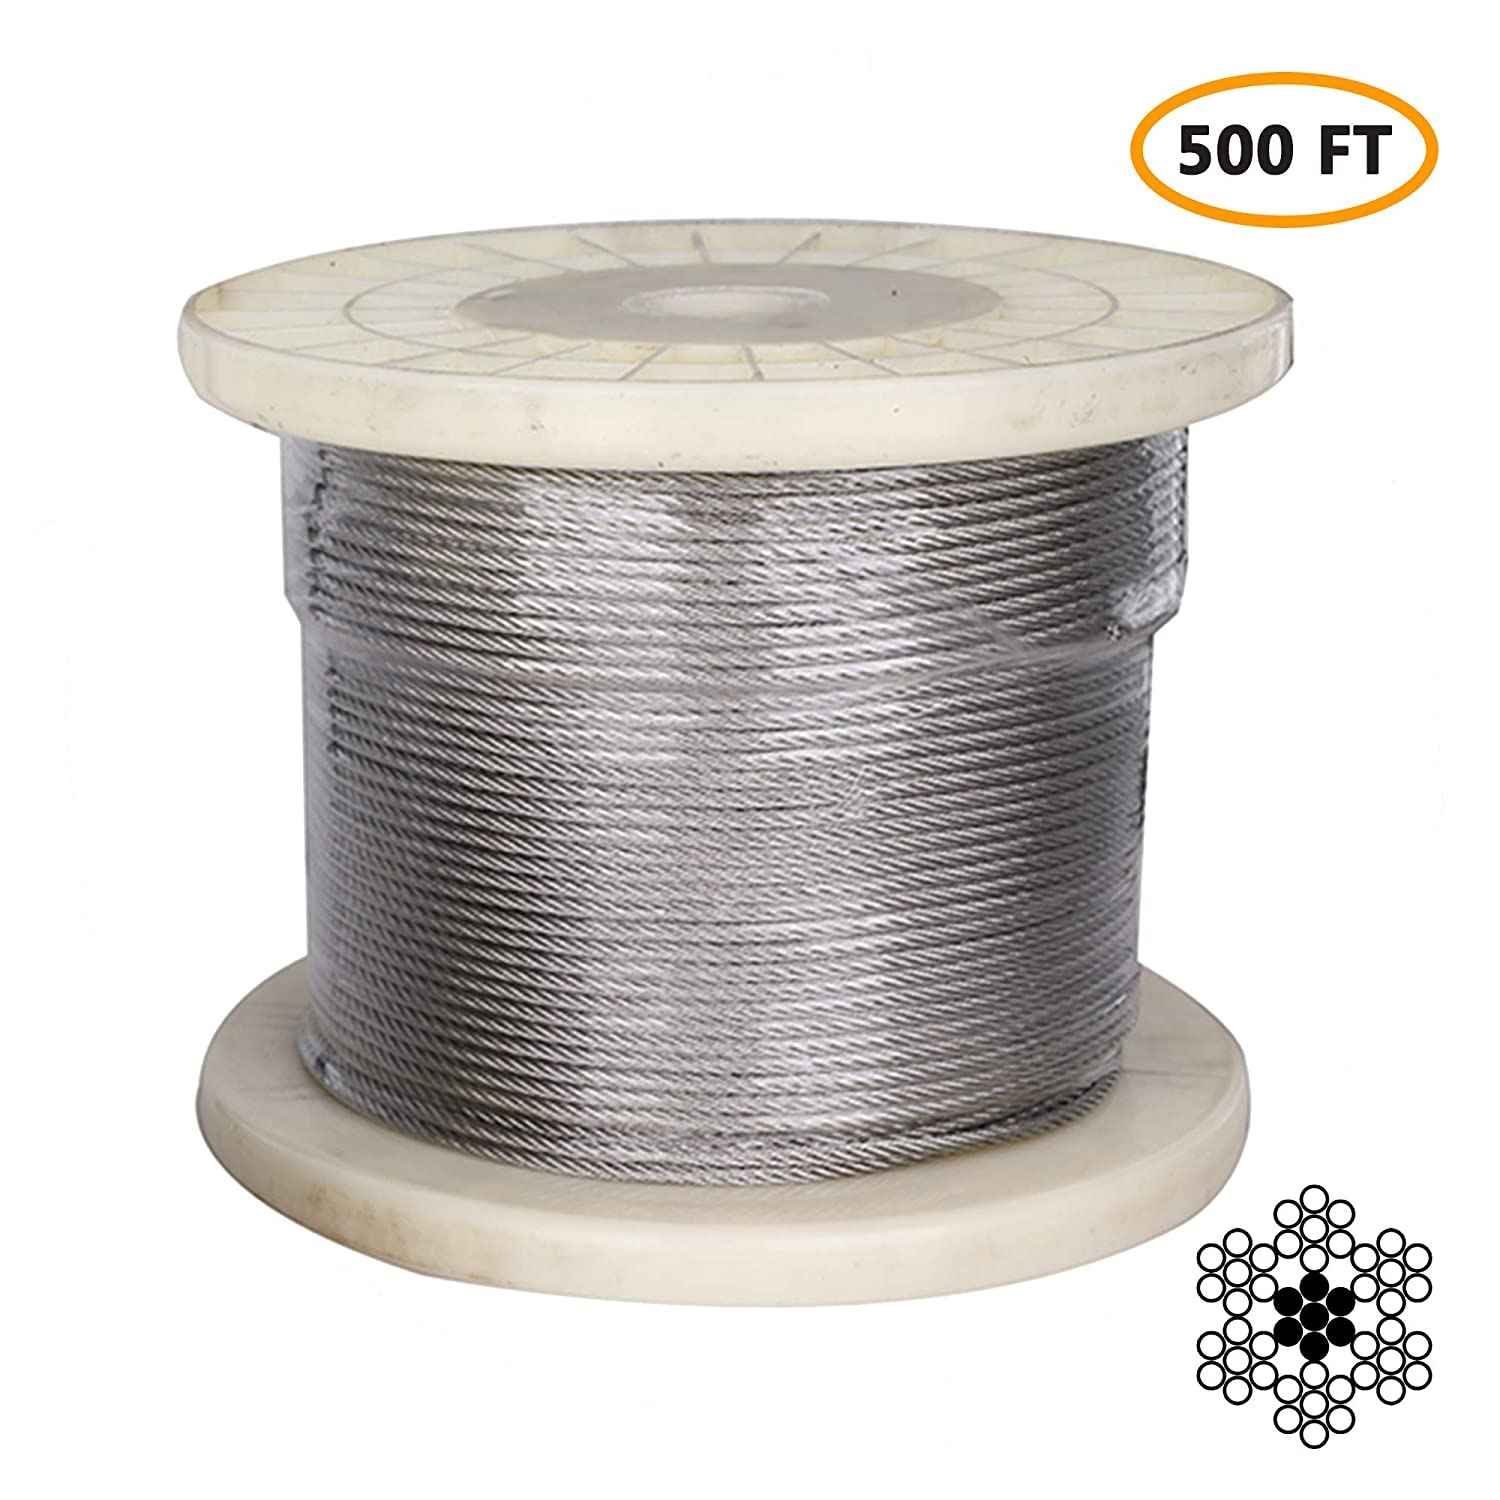 "1/8"" Stainless Steel Aircraft Cable, Marine Grade T316 Stainless Steel Wire Rope, Steel Cable for Deck Railing Stair Railing & DIY Balustrade, 7x7 Braided, 500FT"